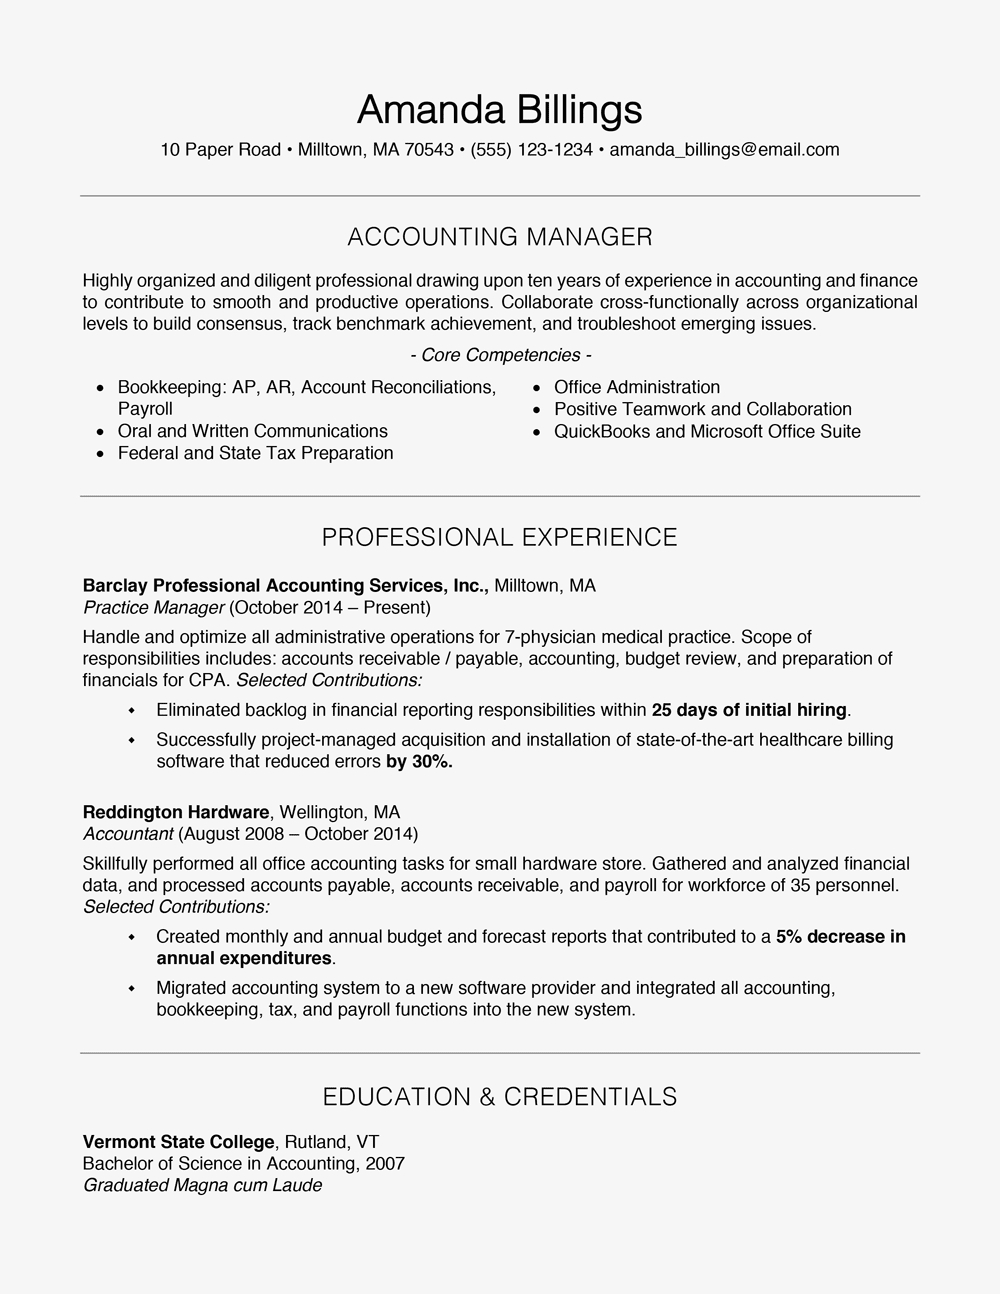 Data Entry Job Description for Resume - 100 Free Professional Resume Examples and Writing Tips